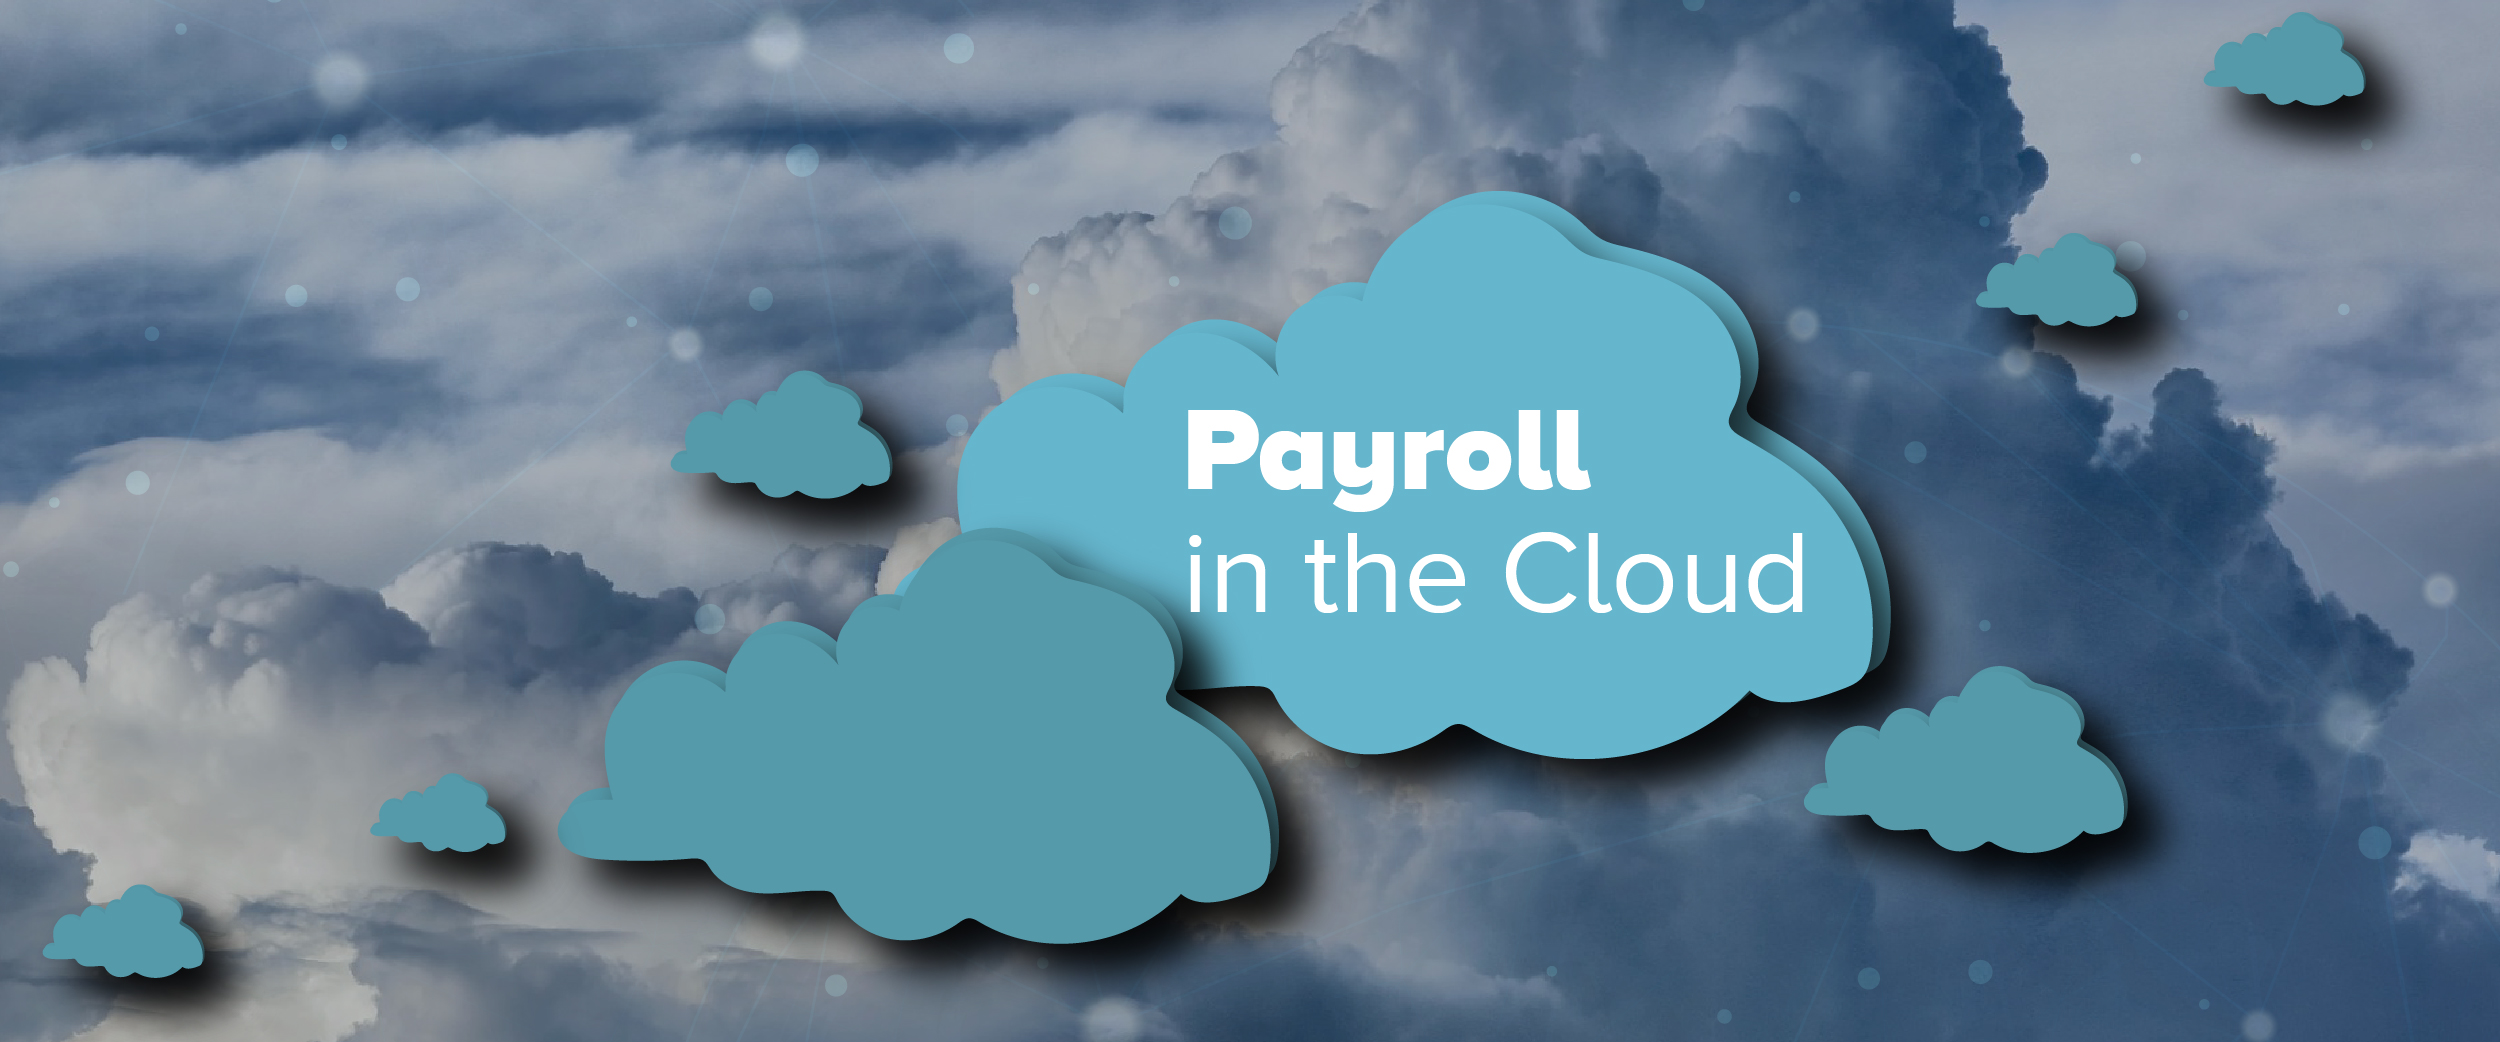 How You Can Change the Company with Payroll in the Cloud